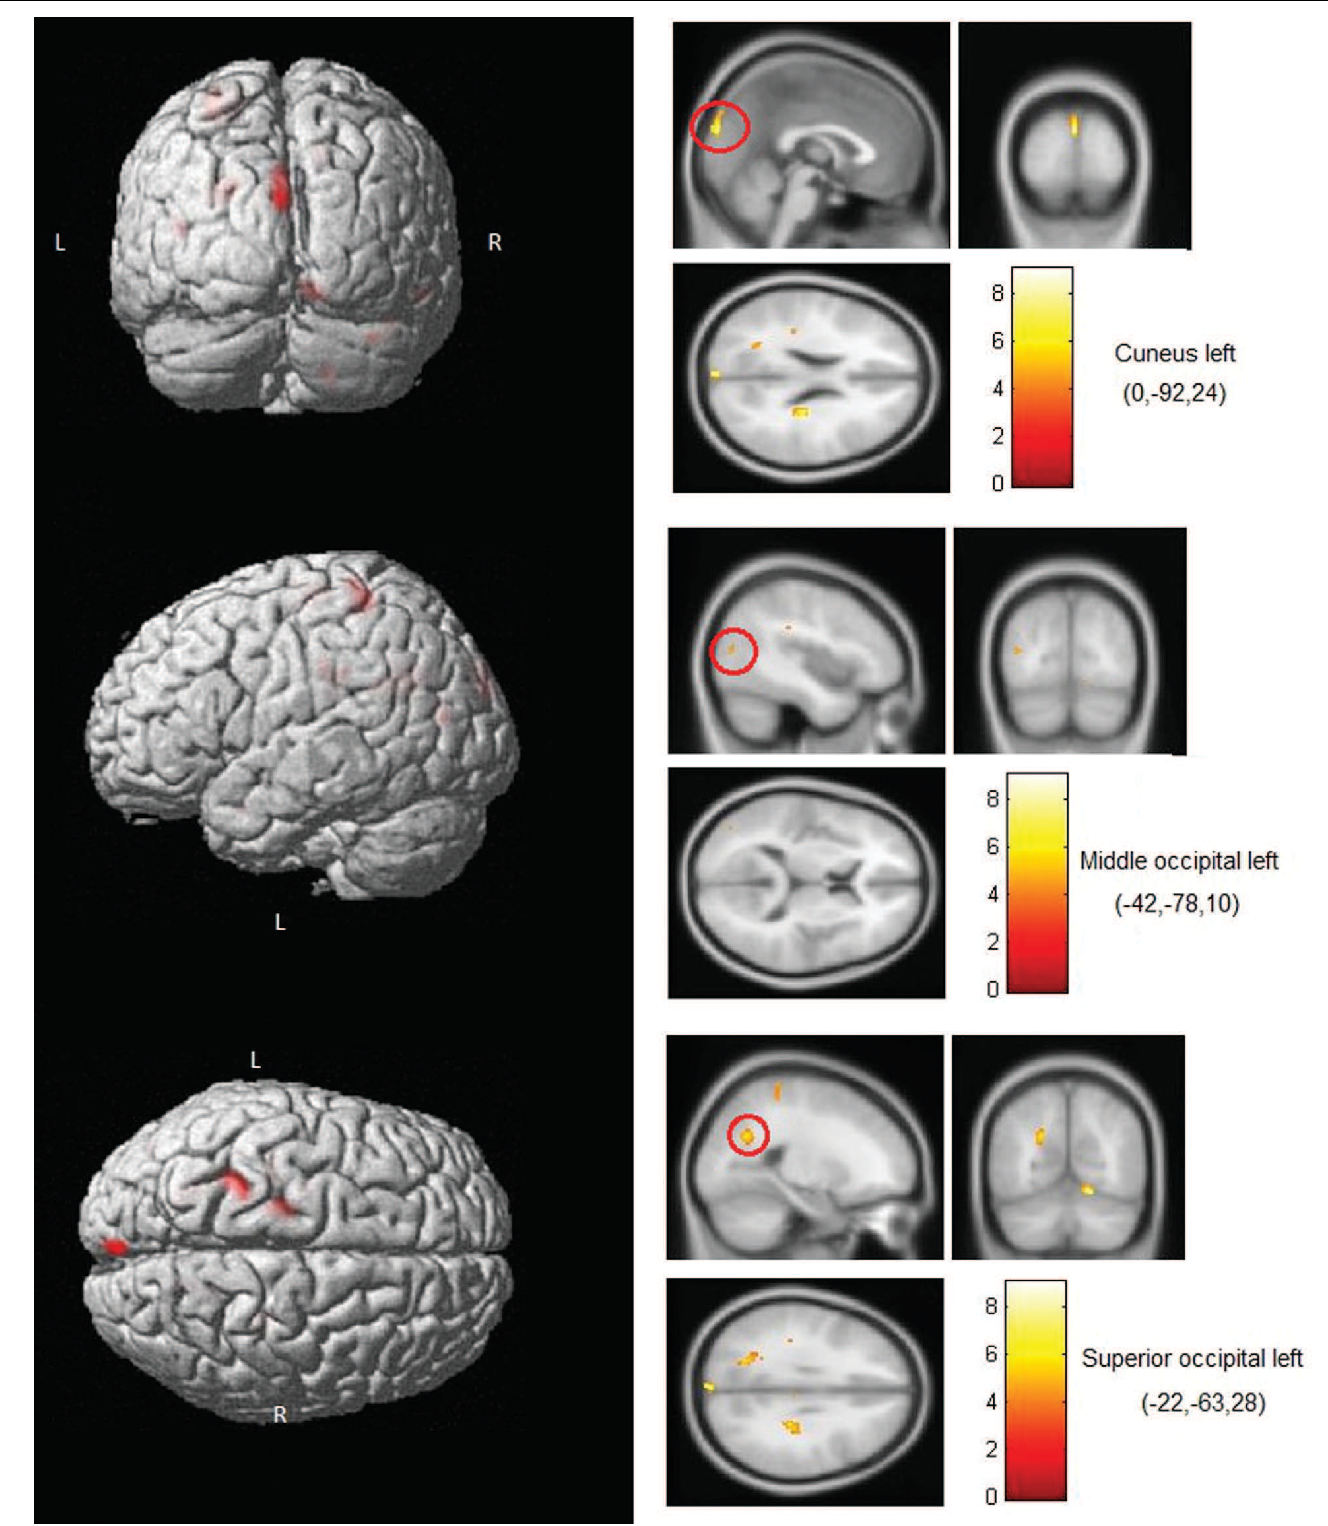 FIGURE 5 | Brain areas where activity predicted IPTs. Shown here are occipital areas where BOLD activity during right hand exploration in blind subjects significantly correlated with the IPTs. No correlations involving occipital areas were found for left-hand stimulation or for either hand in the sighted subjects.